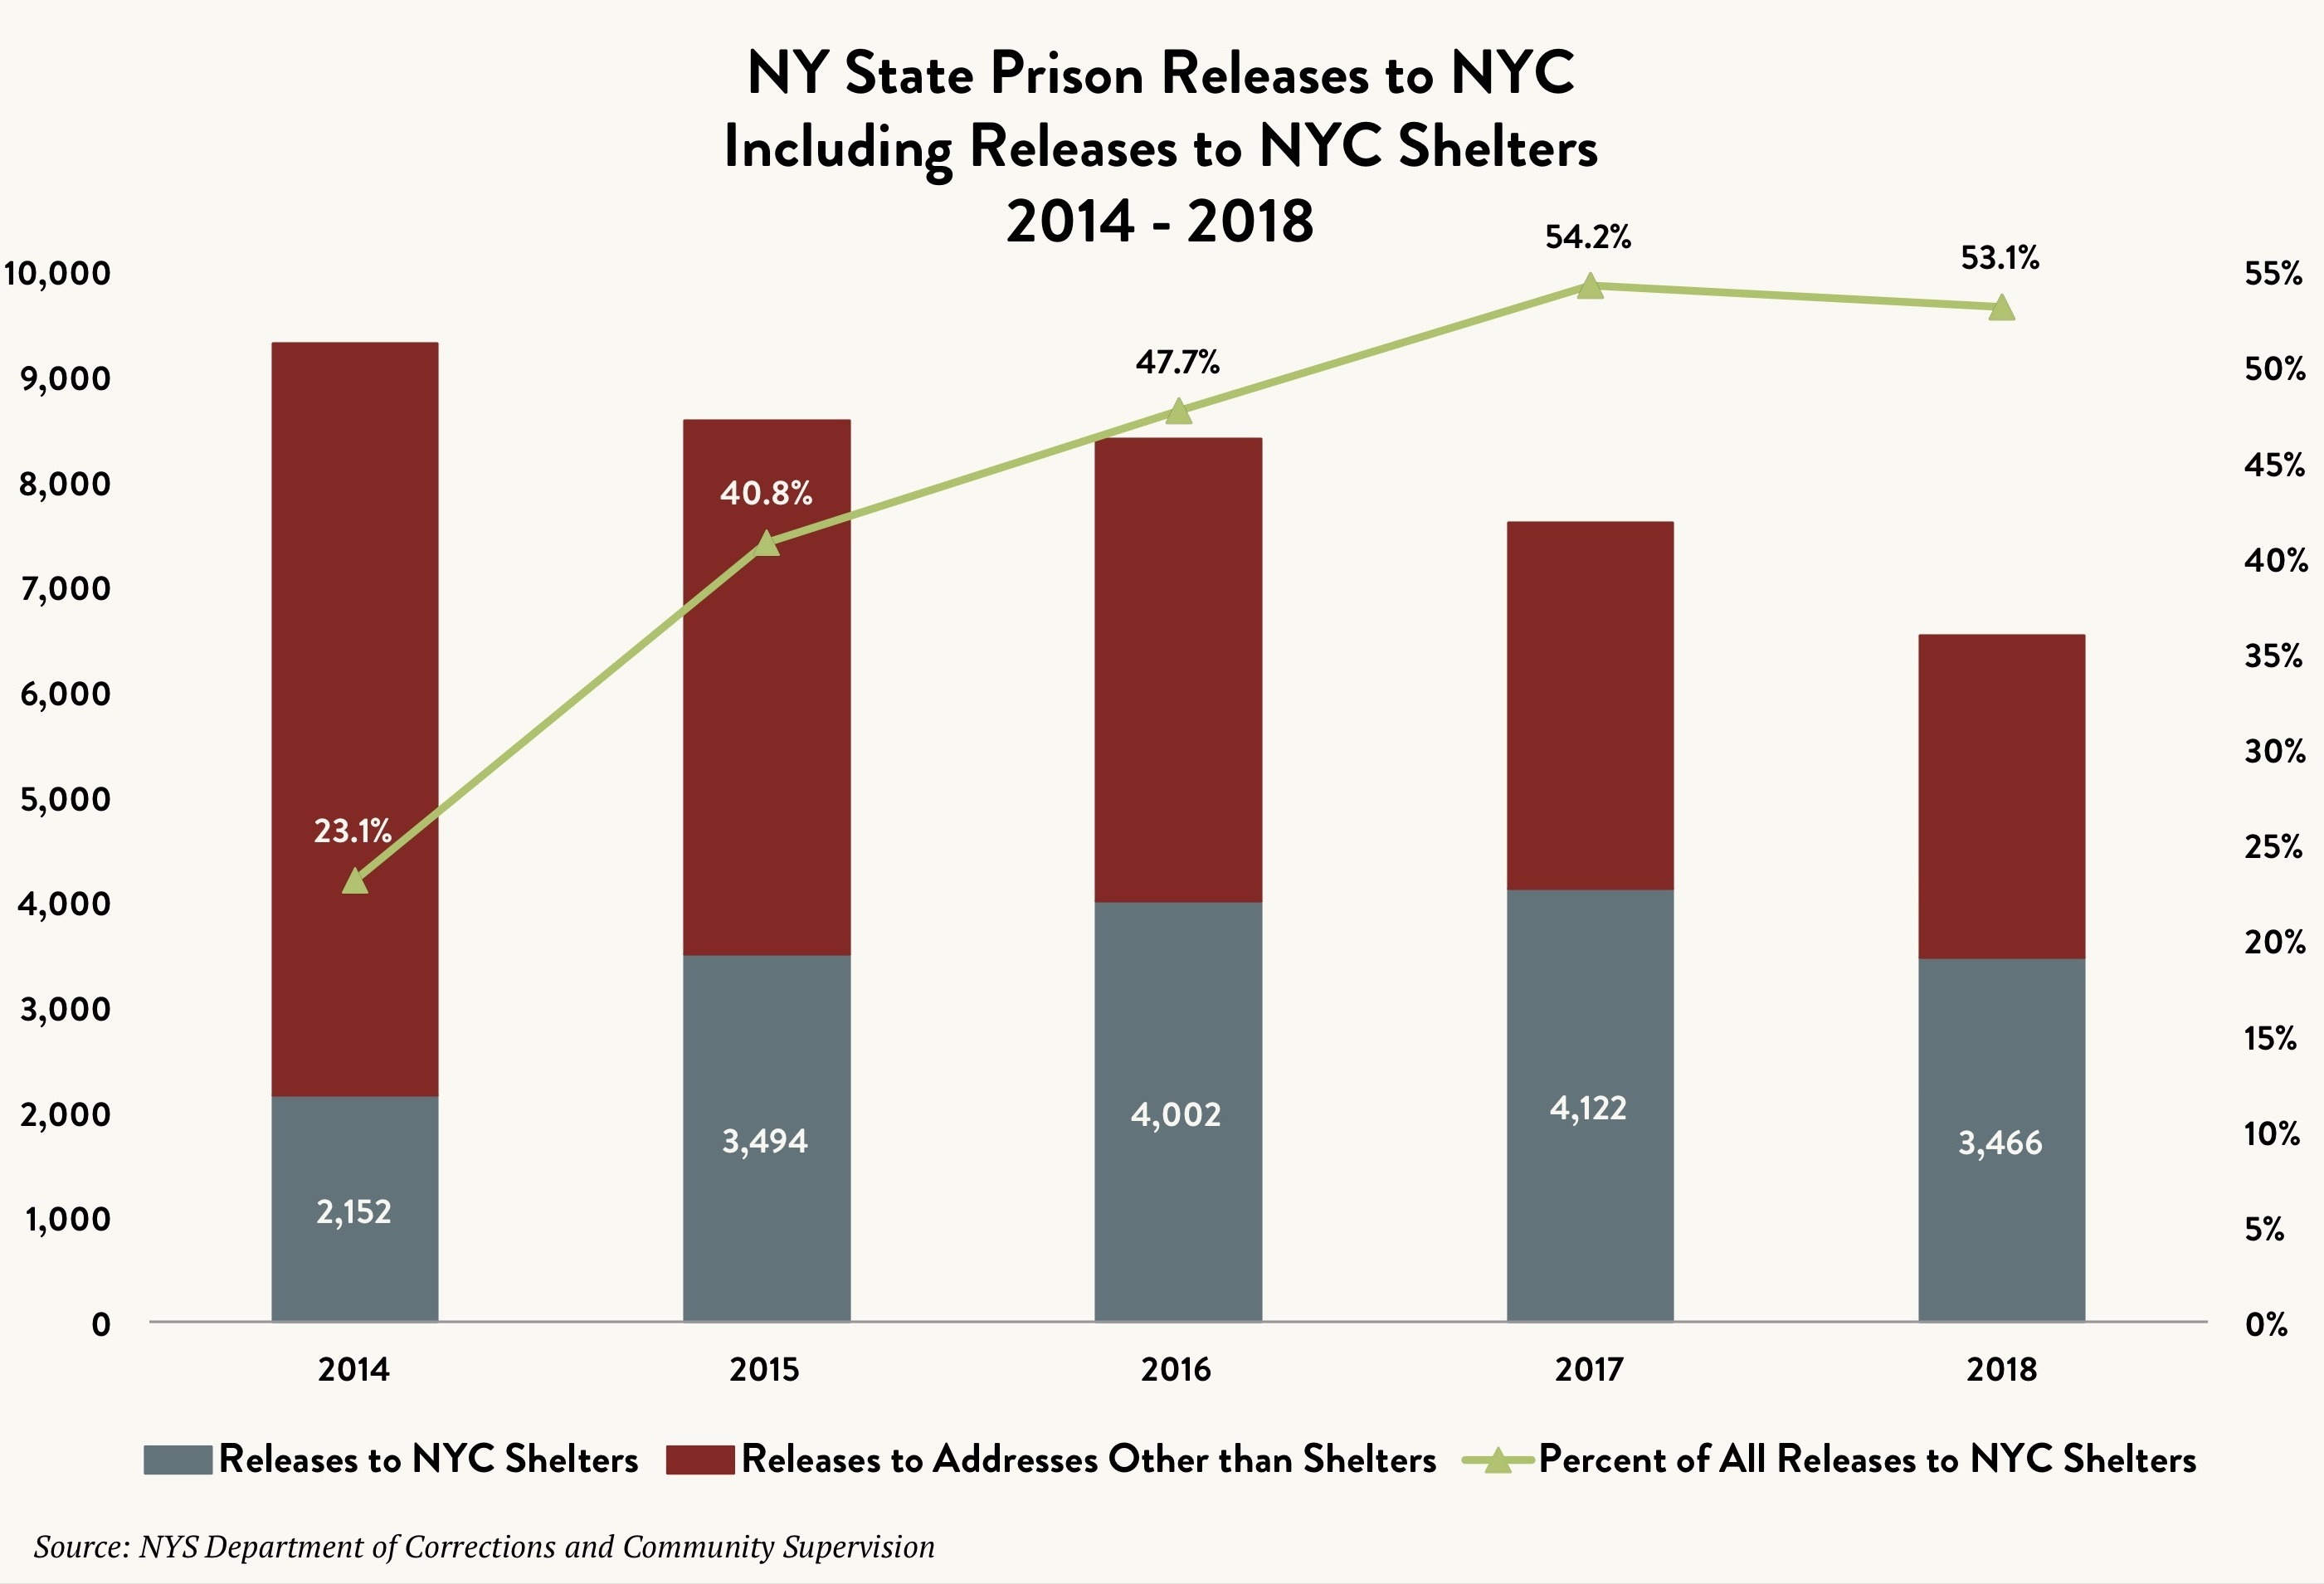 Stacked bar and line graph showing the NY State prison releases to NYC including releases to NYC shelters between 2014 and 2018.